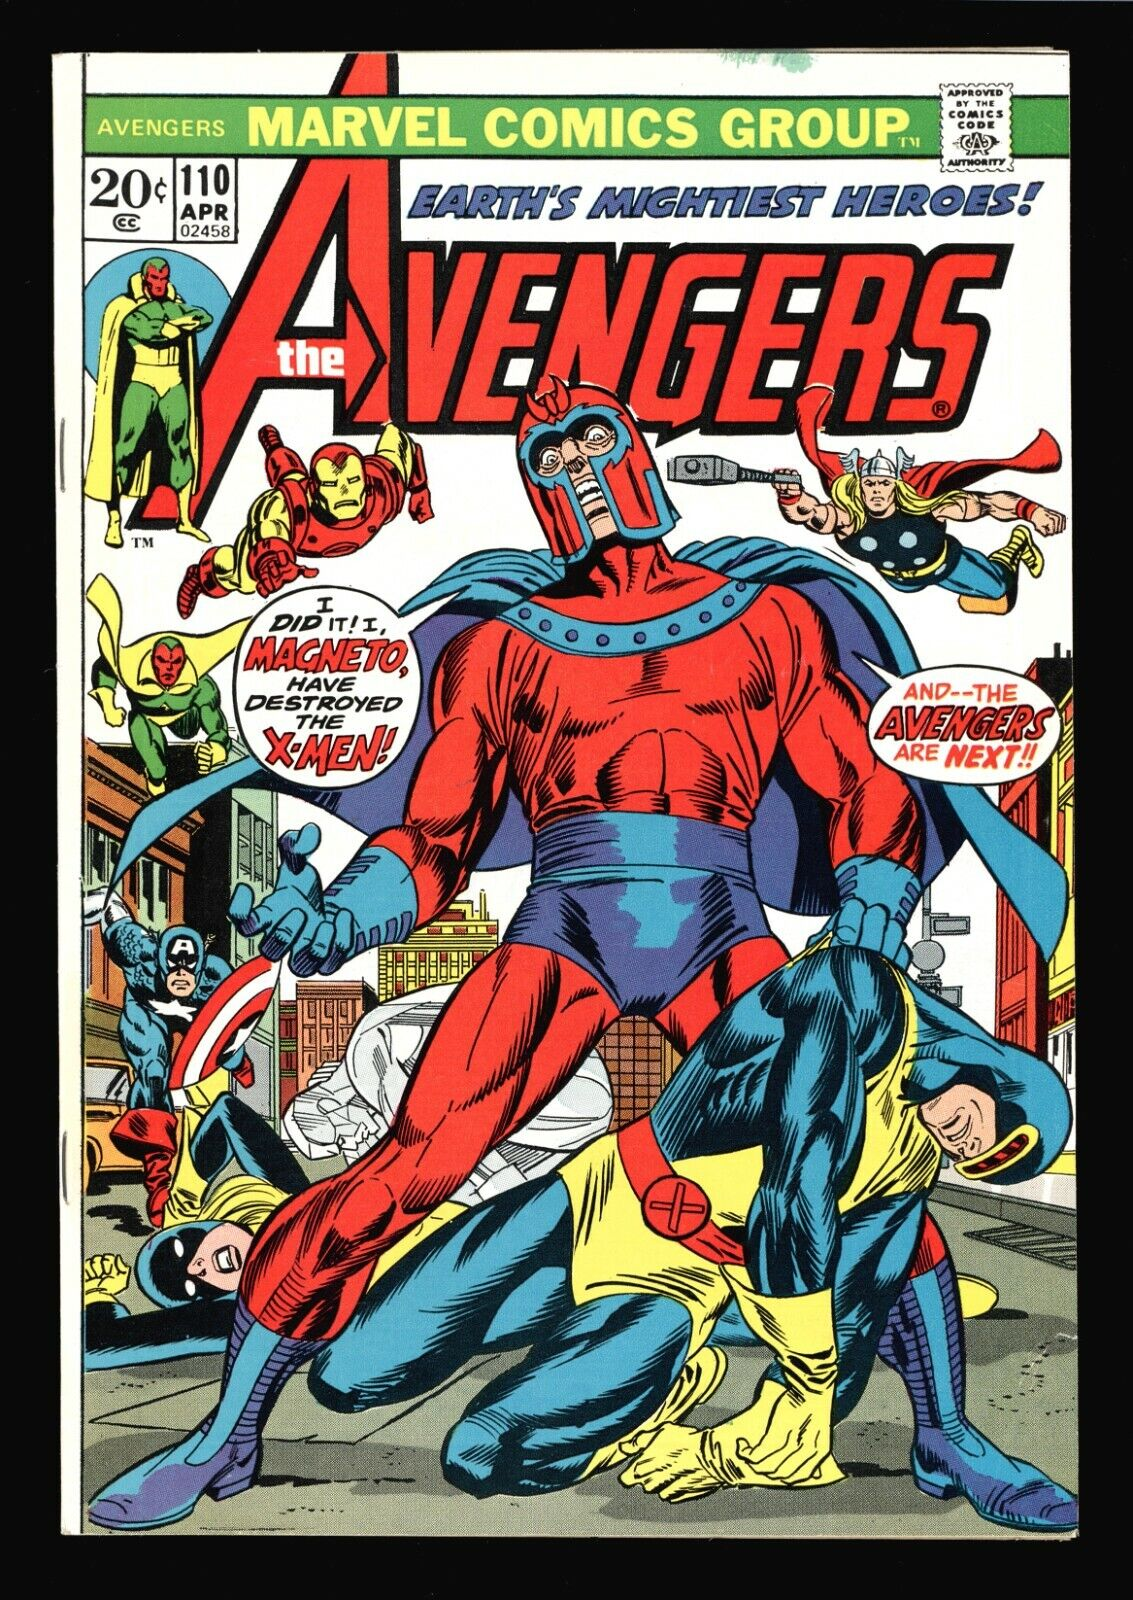 Image 1 - 3-21-AVENGERS-110-VS-MAGNETO-WITH-THE-X-MEN-VISION-AND-S-W